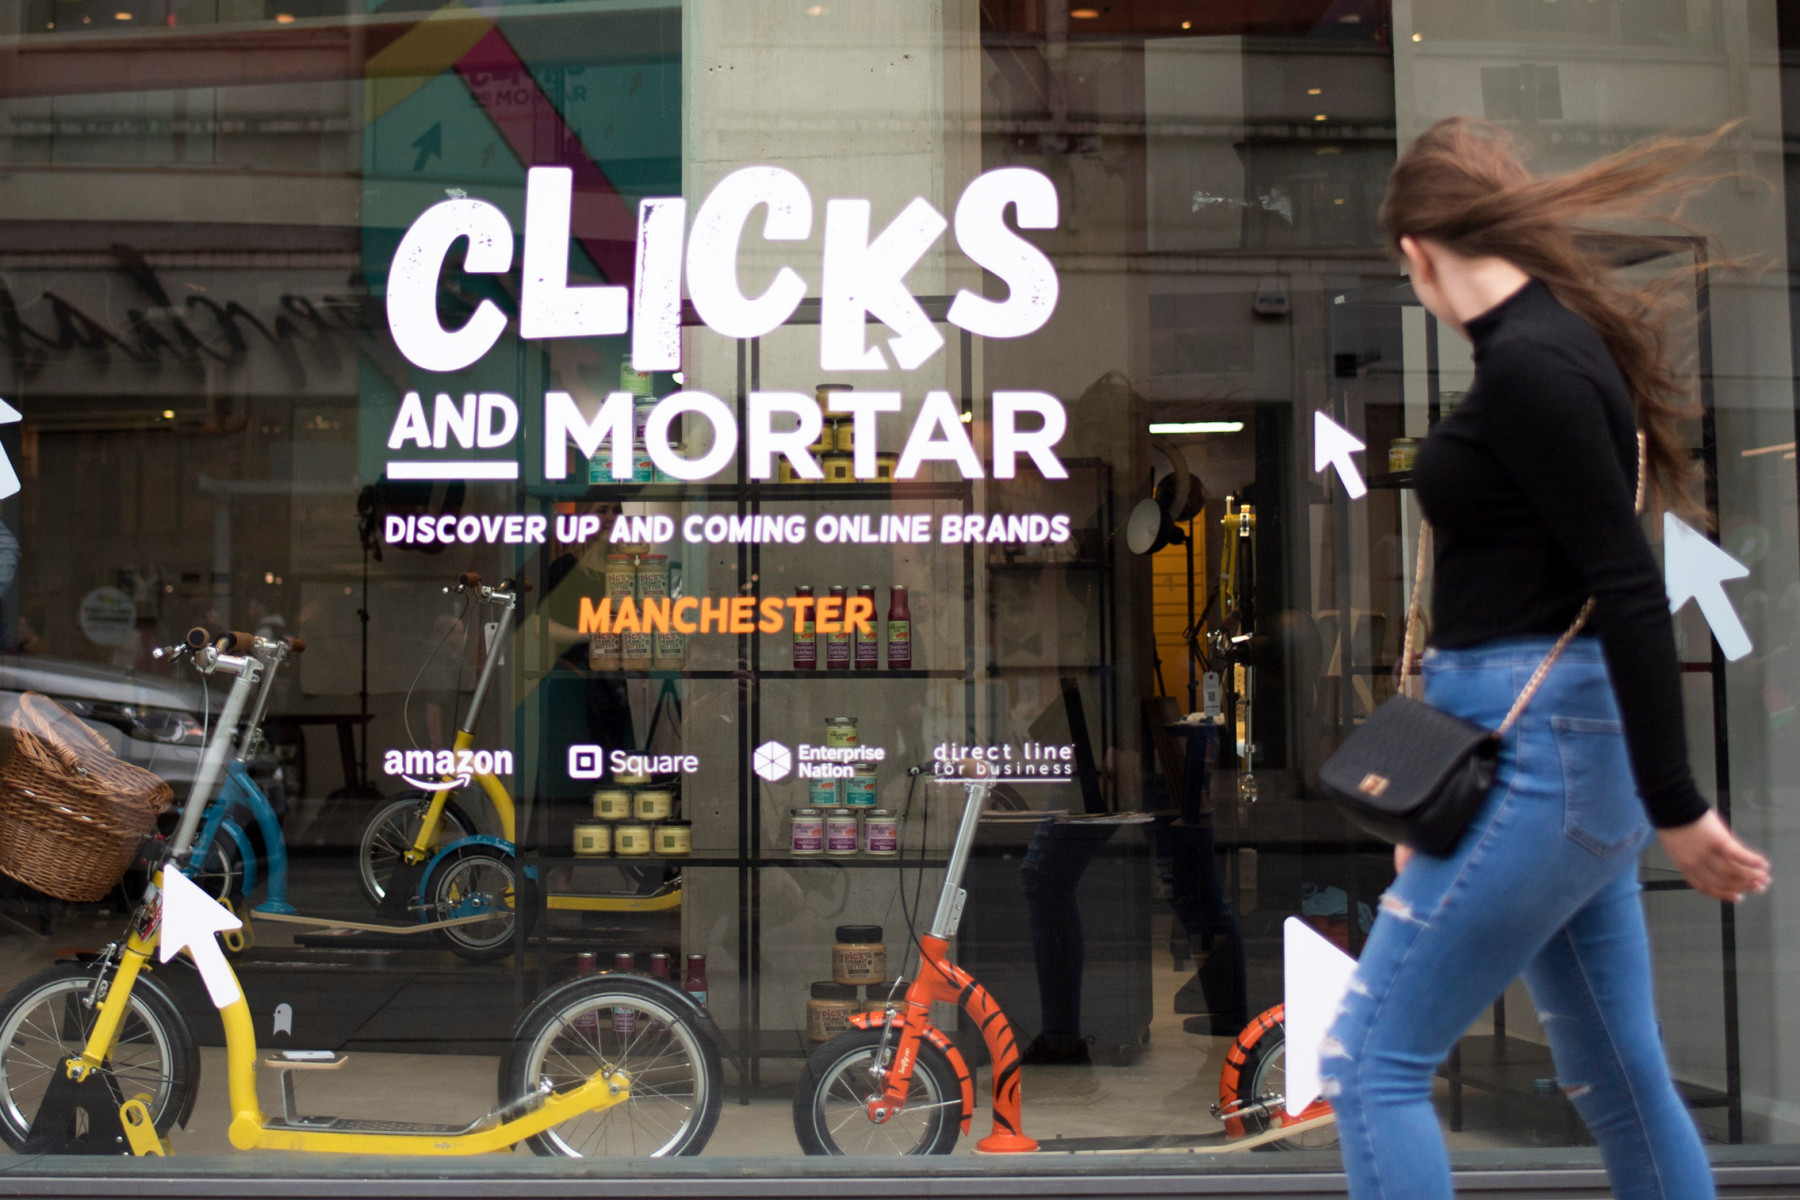 Amazon plots ten 'Clicks and Mortar' high street stores in UK